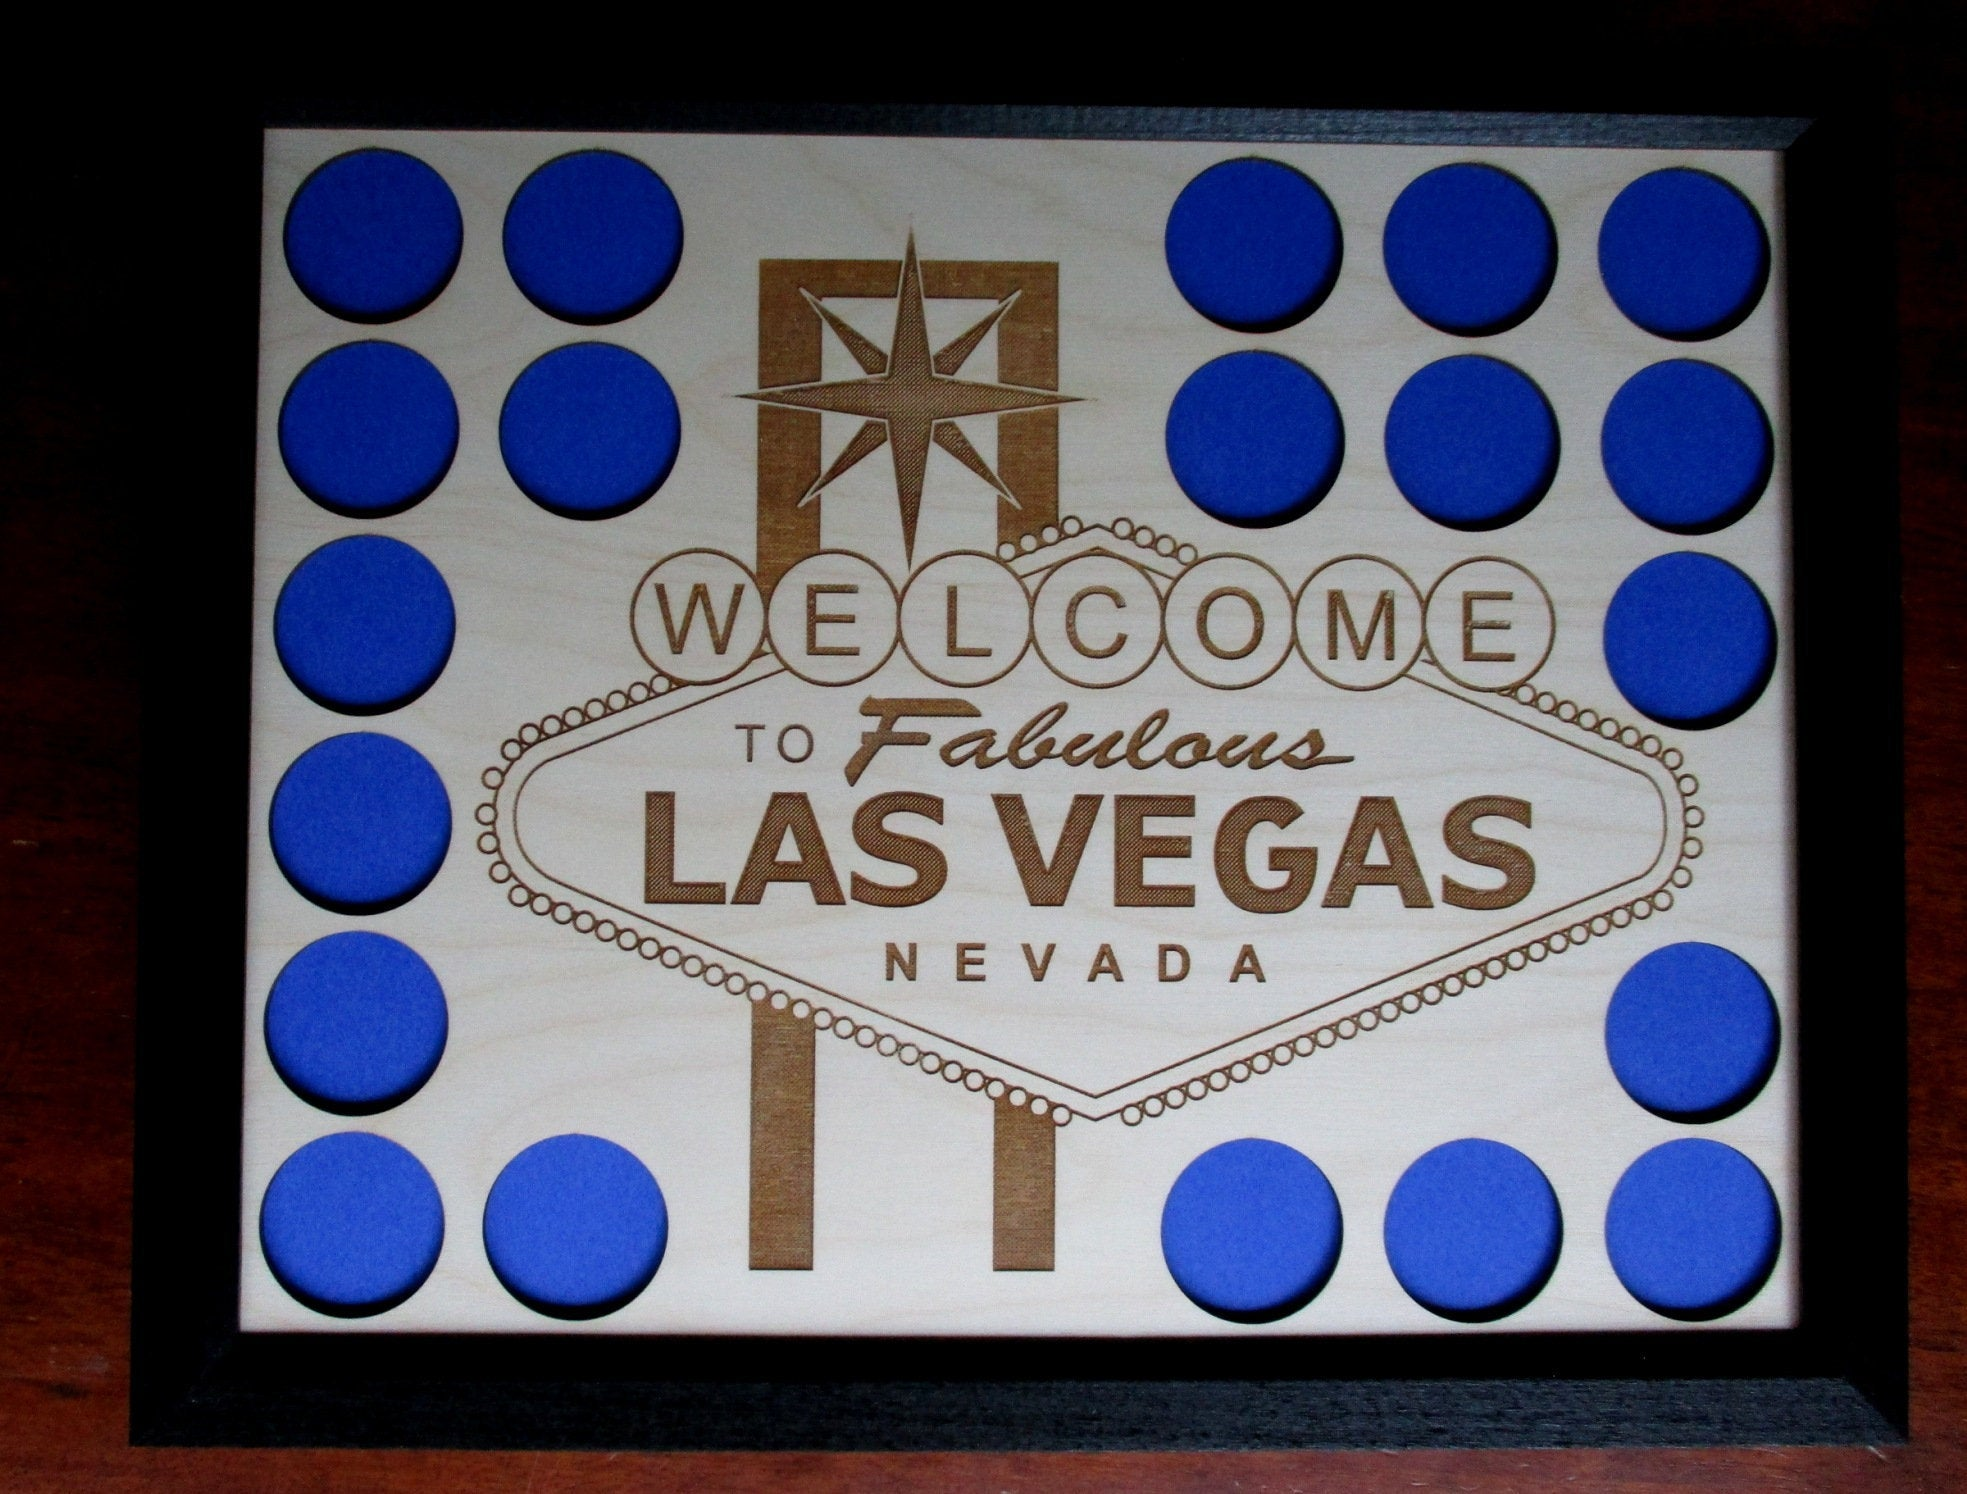 Personalized Photo-engraved Poker Chip Display Frame Insert Holds 36 Harley-Davidson or casino chips Photo-engraved 11 X 14 photo insert